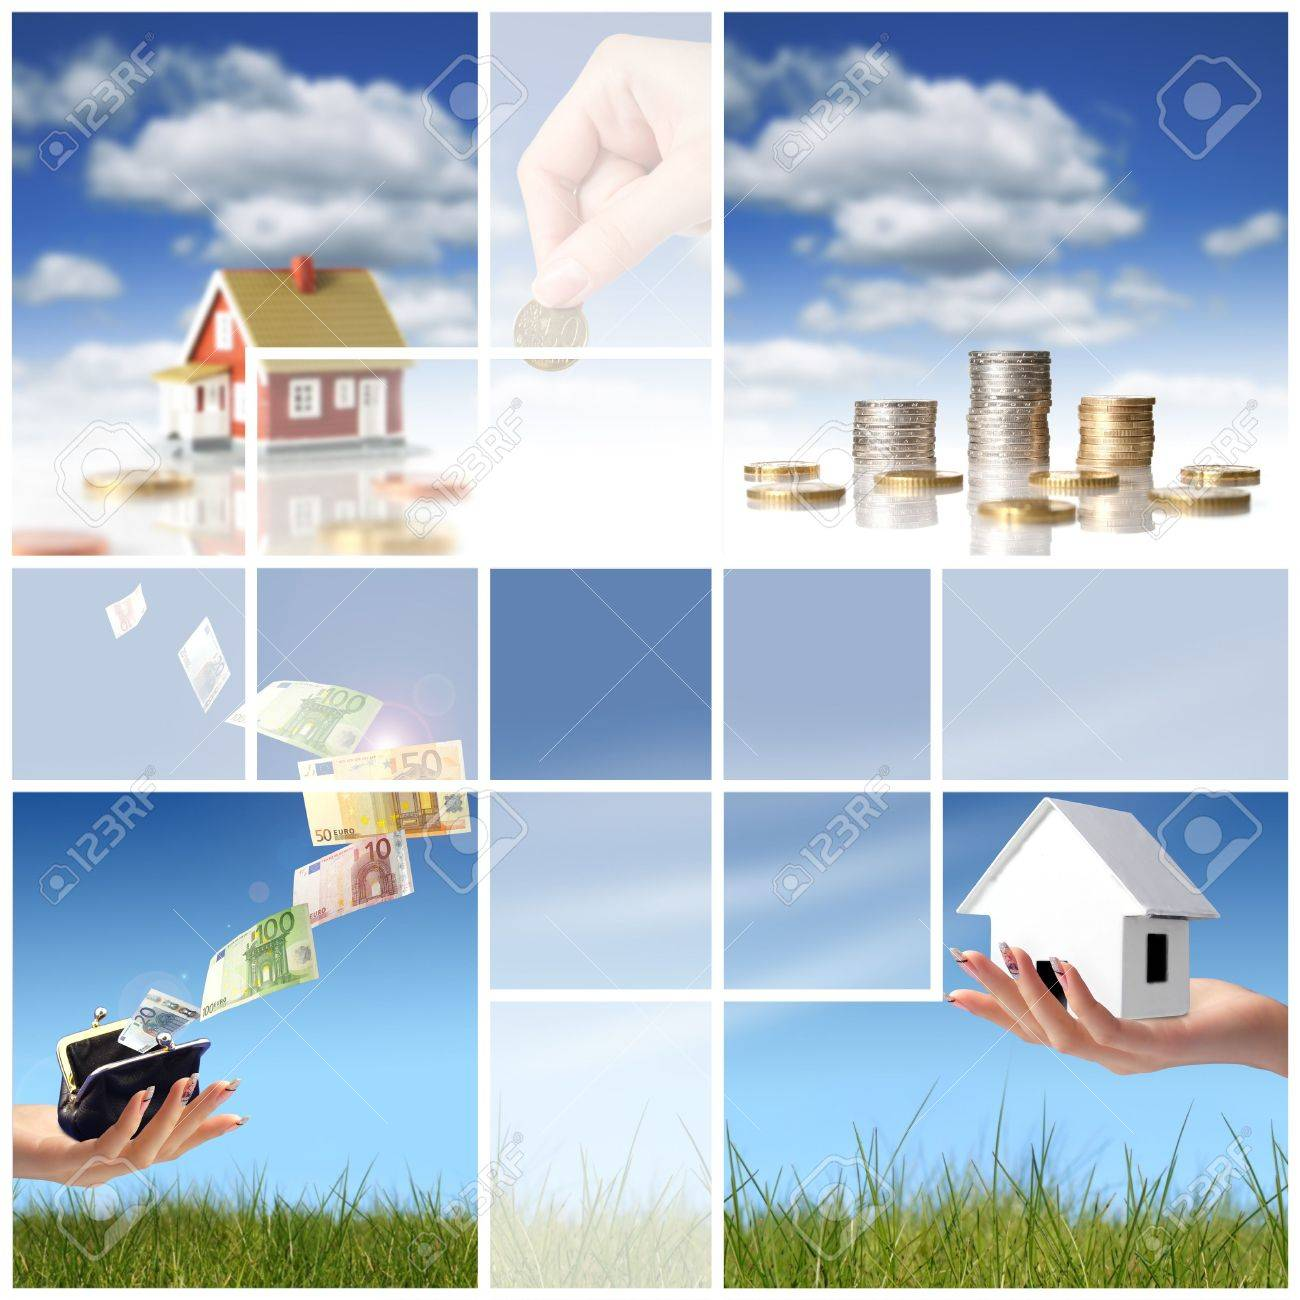 Collage. Invest in real estate concept. Stock Photo - 4823033